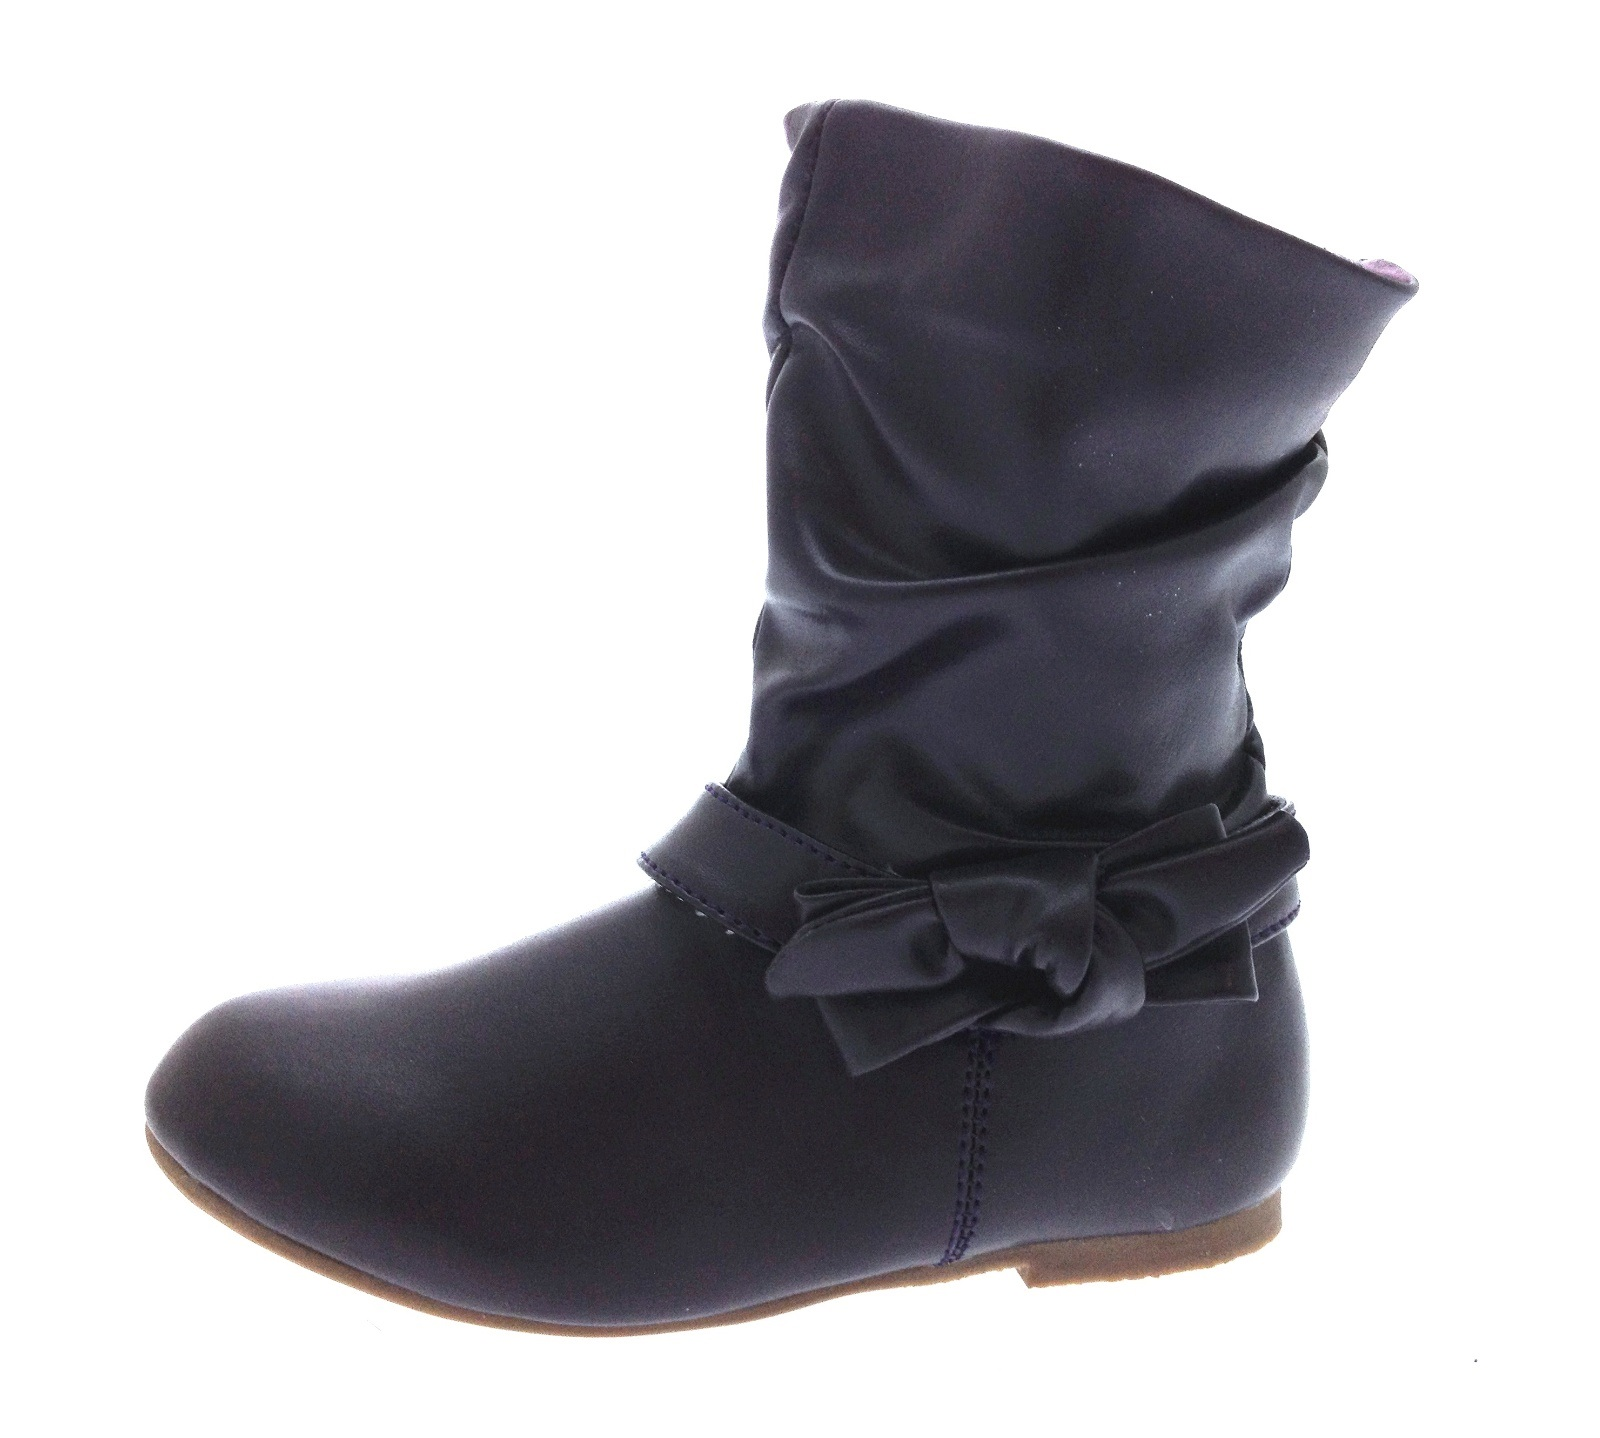 Kids Girls Mid Calf Boots Warm Winter Slouch Faux Leather School ...